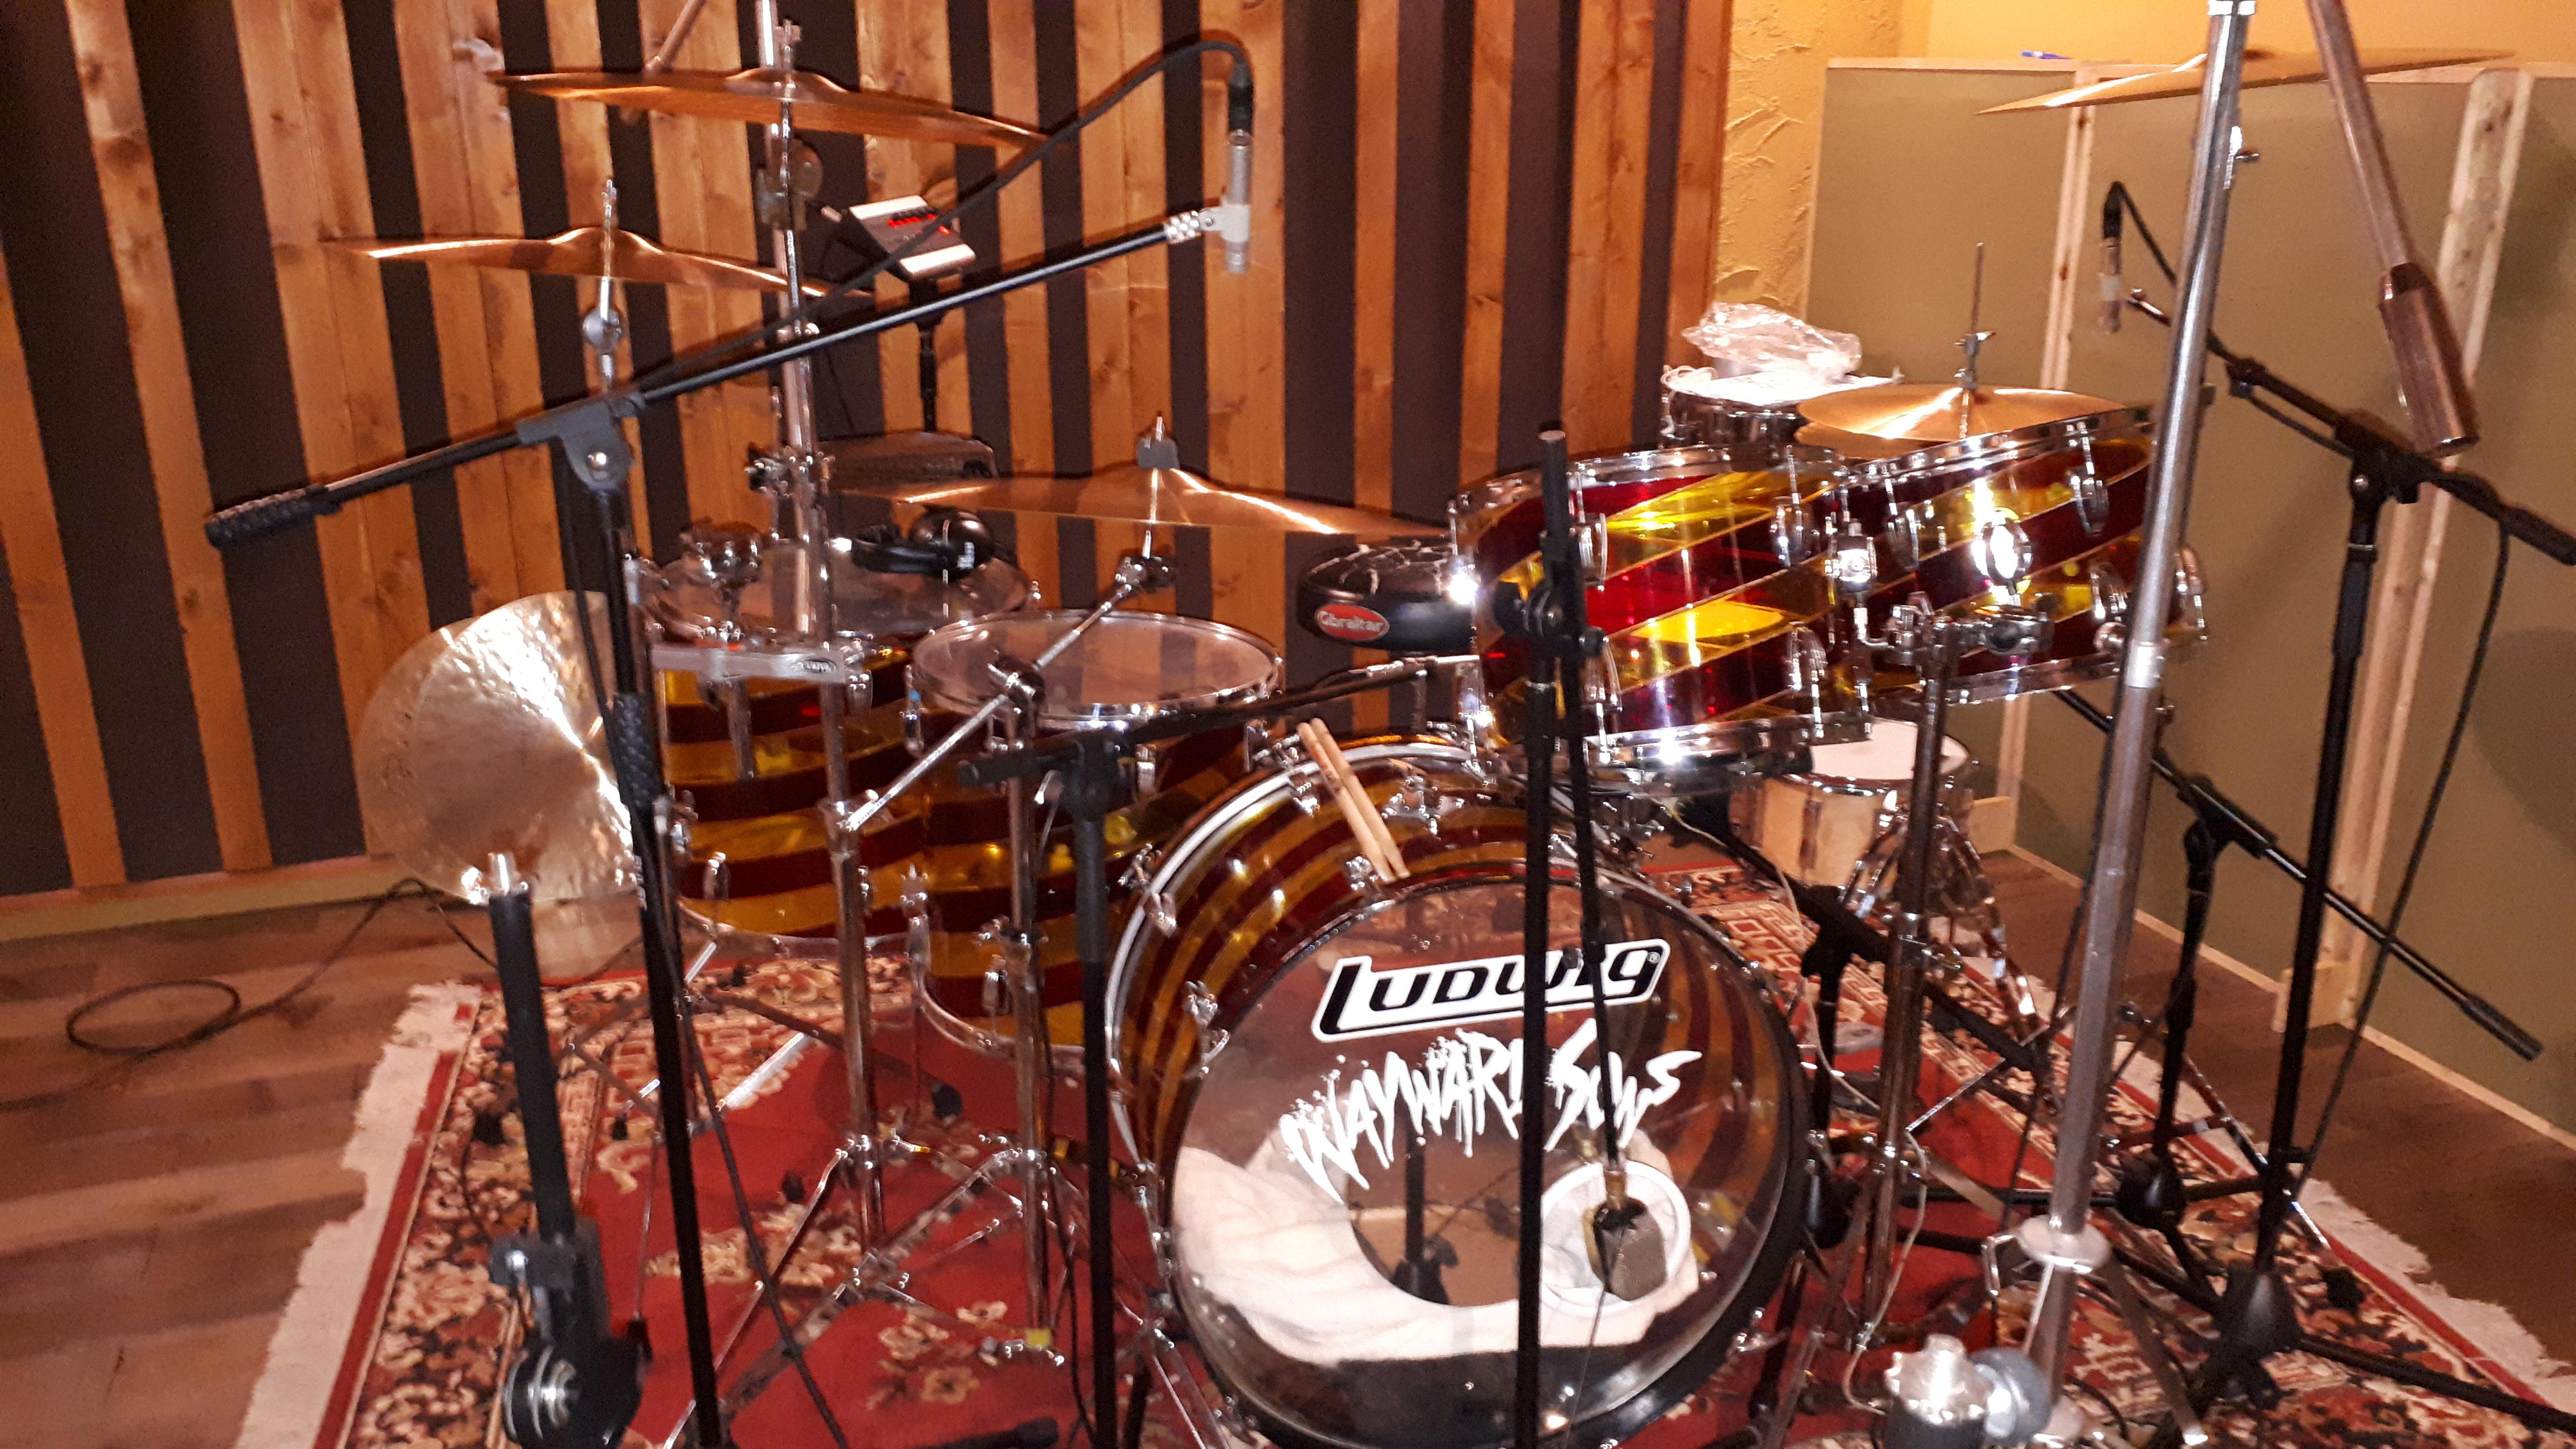 """Wayward Sons, Phil Martini, Toby Jepson, Vale Studios, New LP ,Ludwig Vistalite, Candy Cane, Paiste 2002 Cymbals, Vic Firth 3A Drumsticks, Ludwig Snare Drums, Meinl 8"""" Cowbell, Studio Drummer"""